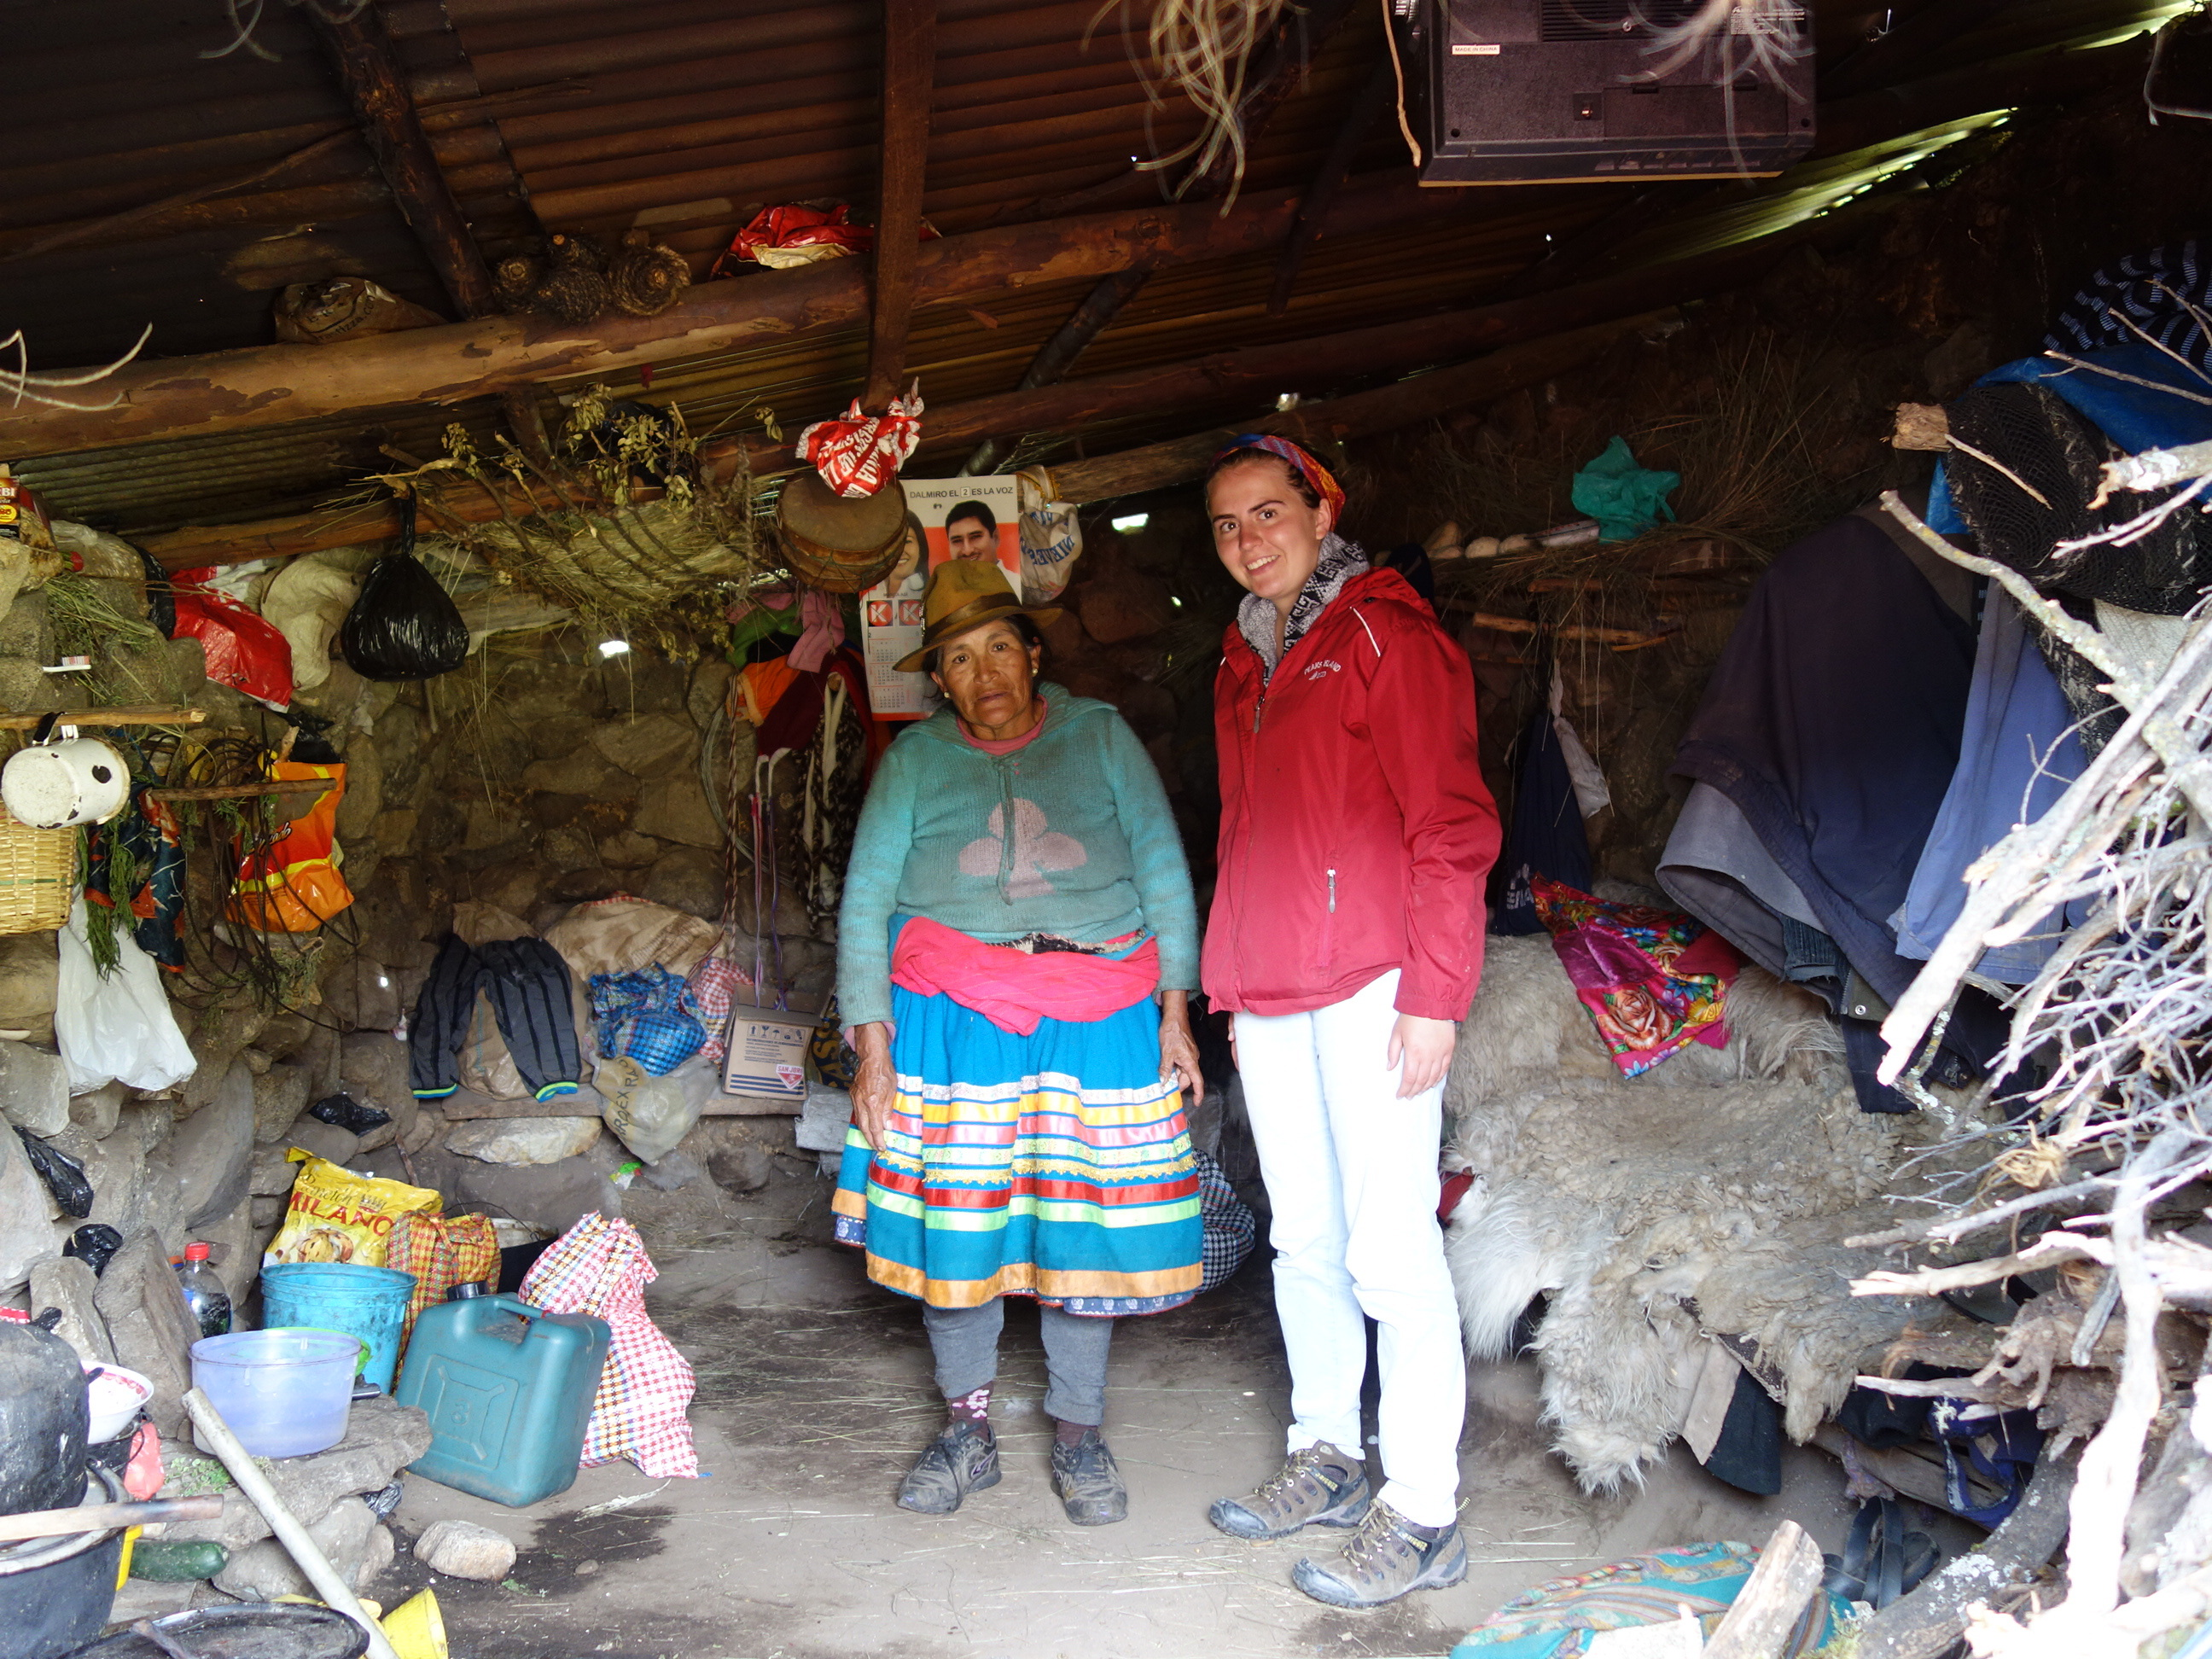 Inside The Hut Notice The Alpaca Hide Blankets And Tv Peru Sst